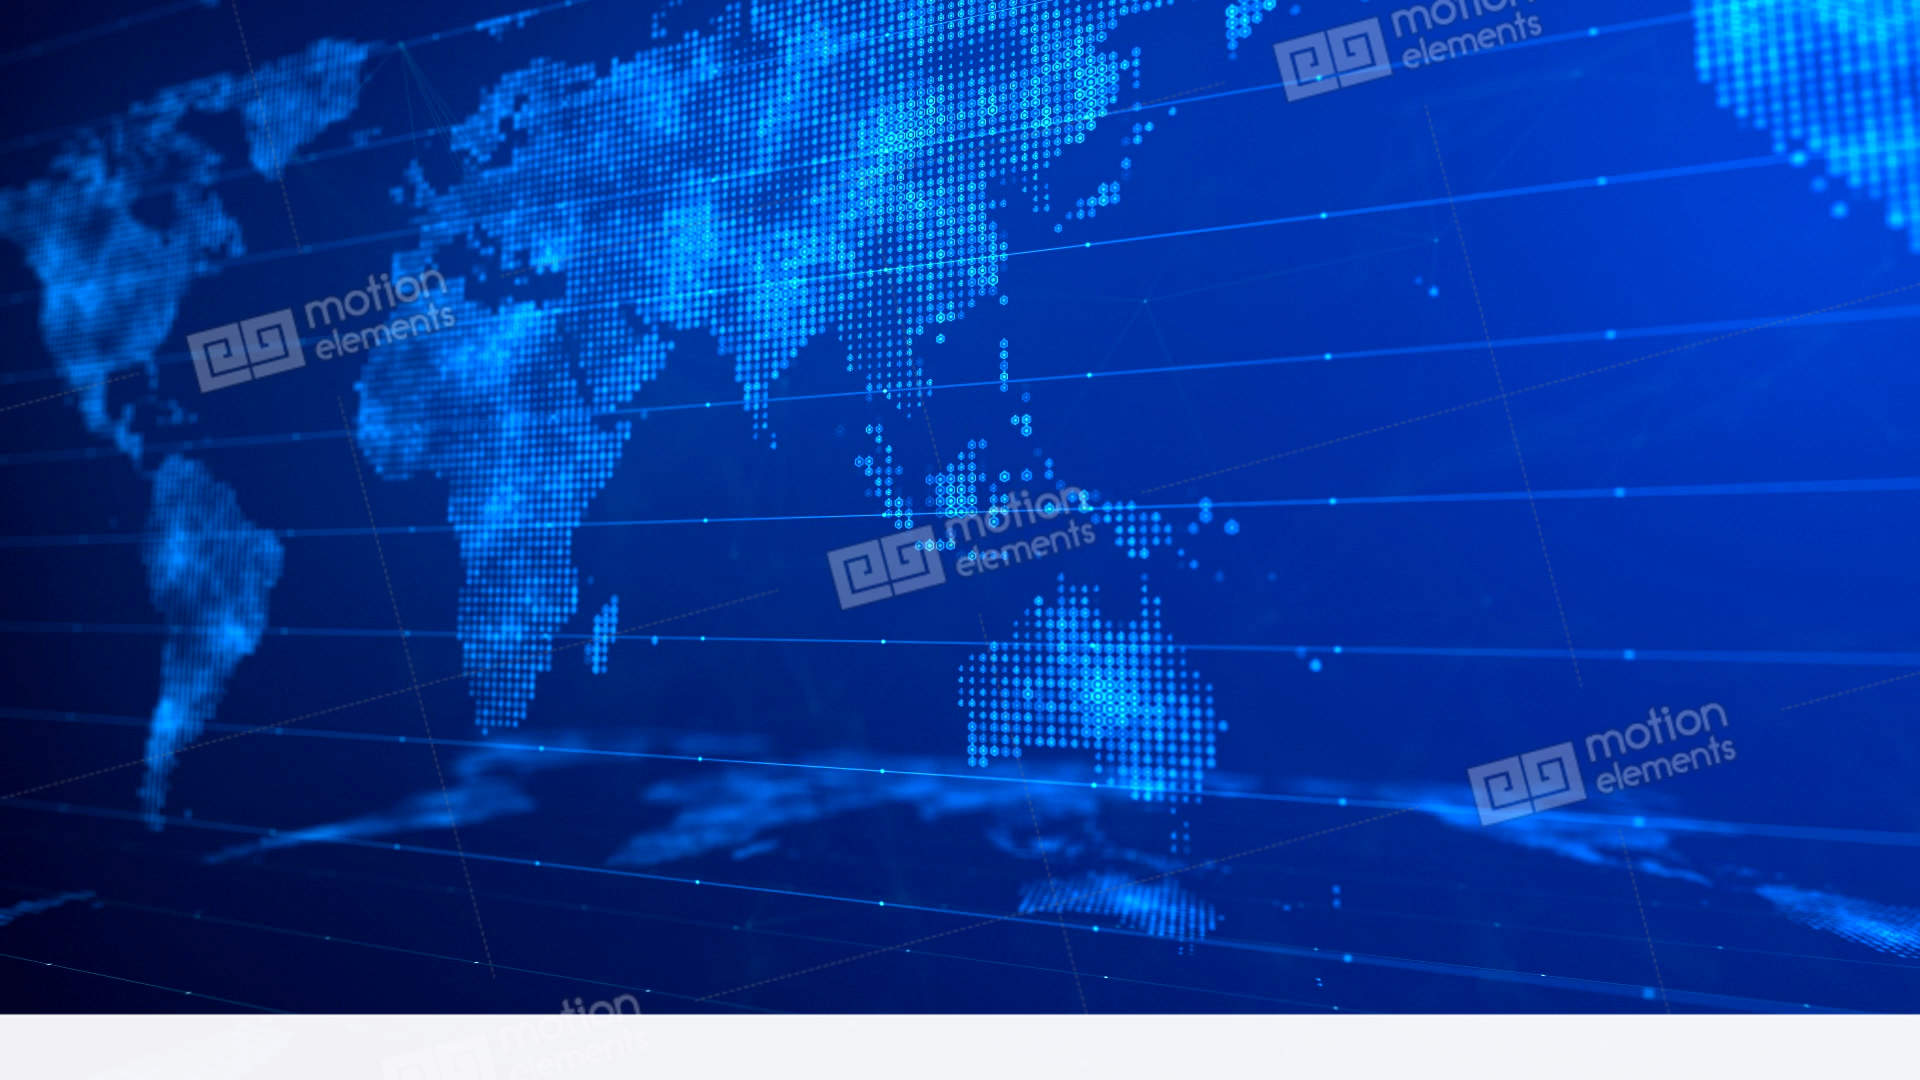 Digital world map background 01 stock animation 11465589 digital world map background 01 stock video footage gumiabroncs Gallery